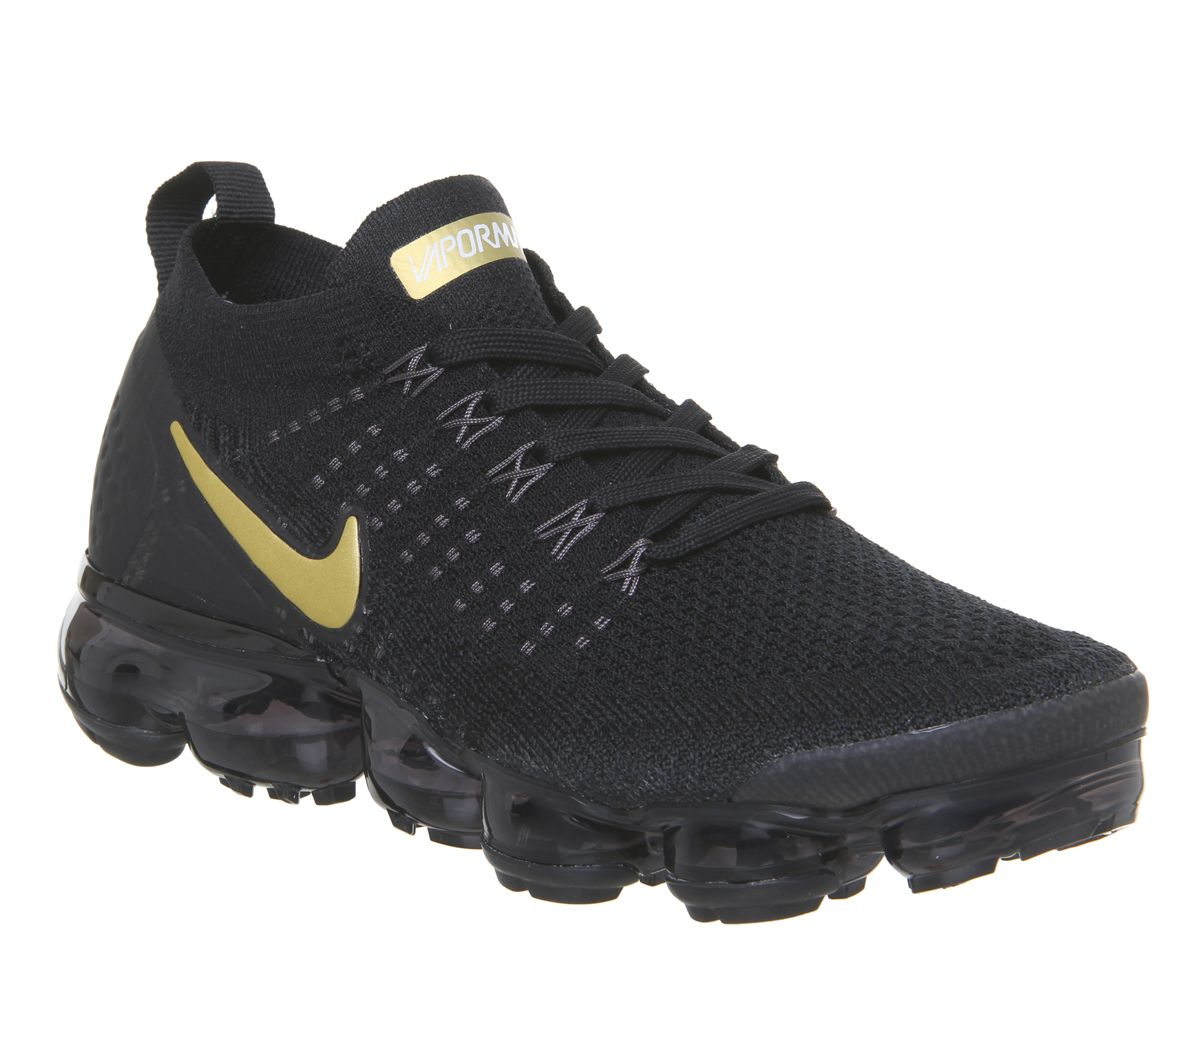 5bacb1defa51f Nike Air Vapormax Flyknit 2 Trainers Black Metallic Gold Metallic ...